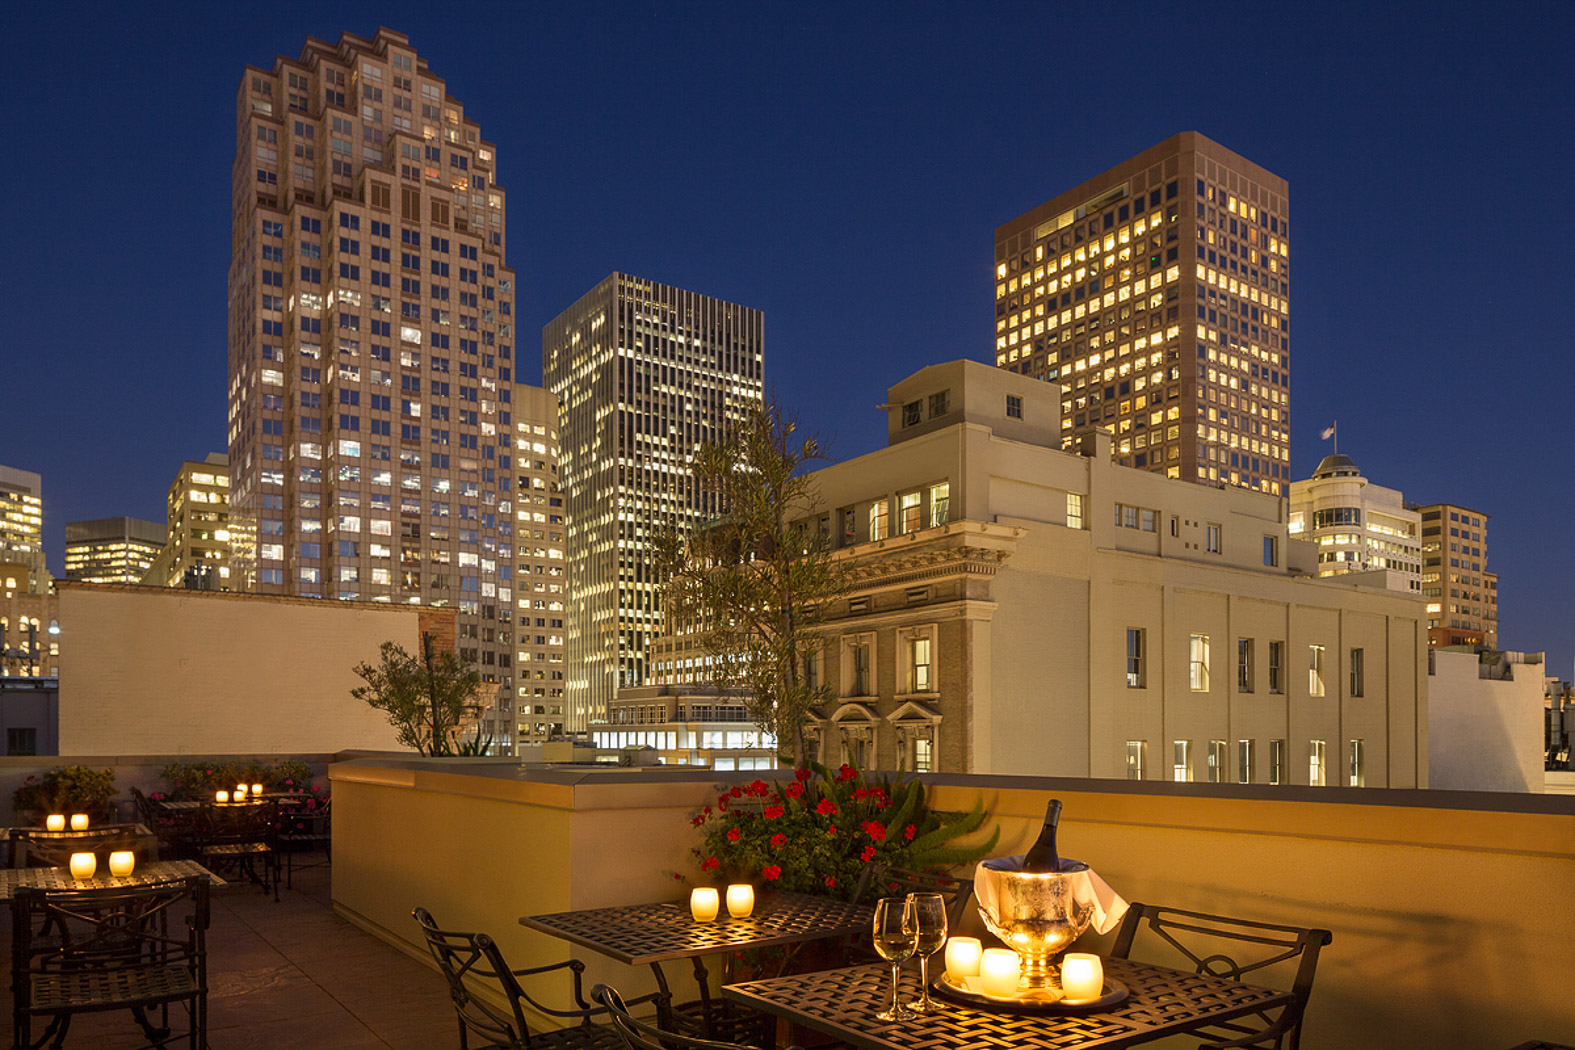 Orchard Hotel San Francisco Promo Code